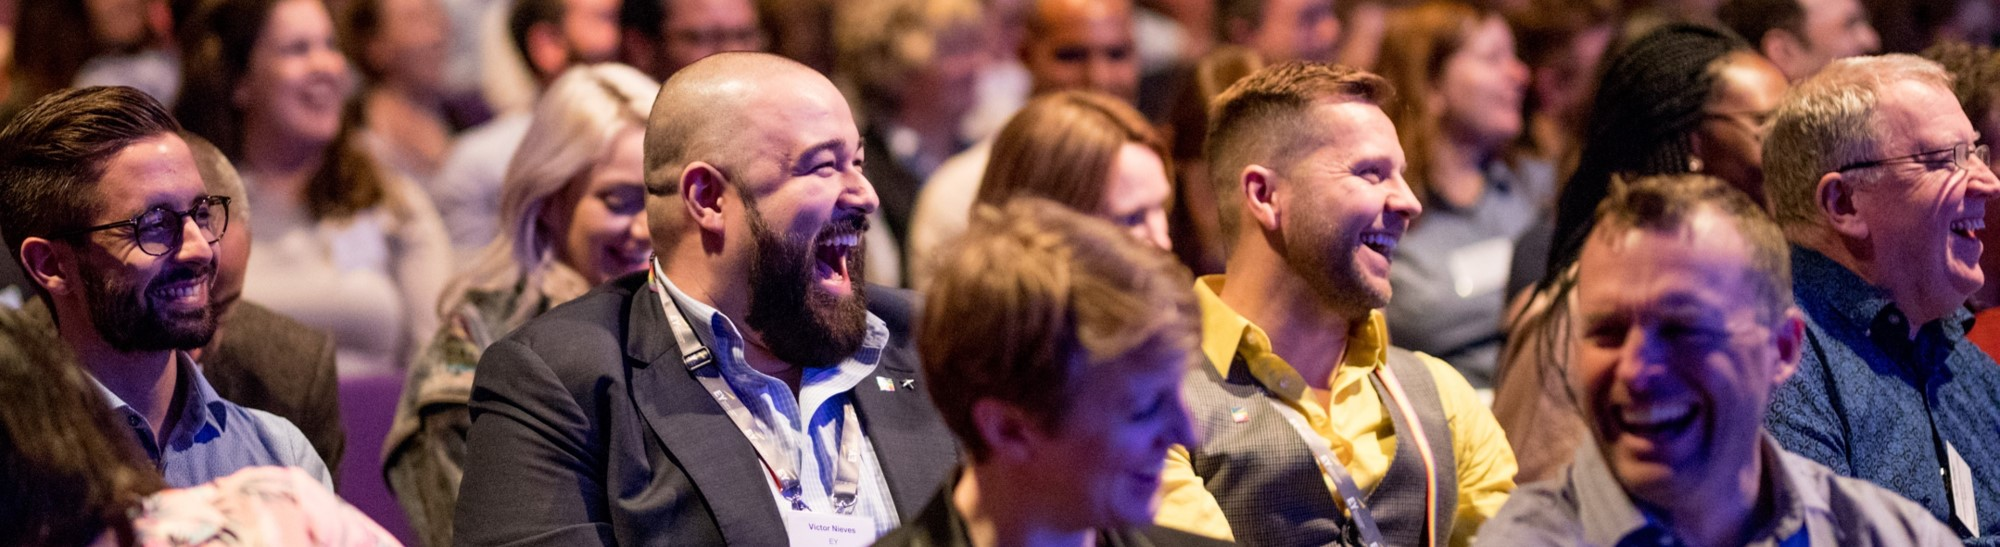 Audience laughing at conference